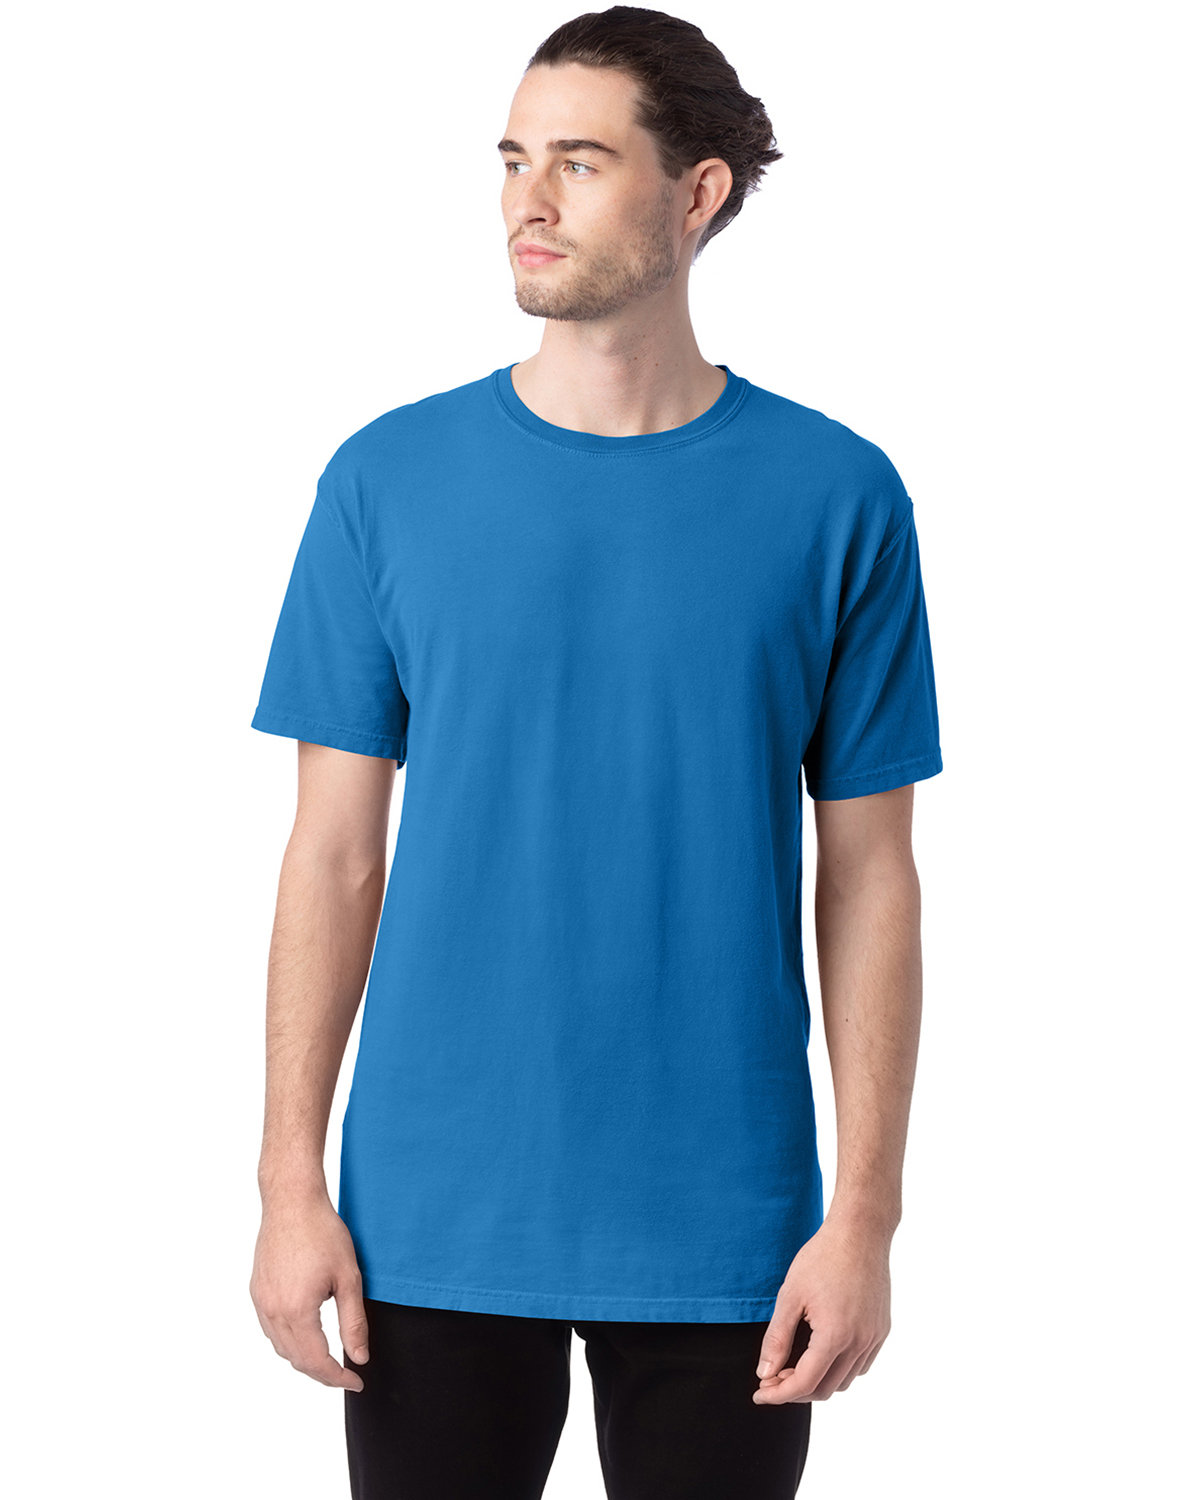 ComfortWash by Hanes Men's 5.5 oz., 100% Ringspun Cotton Garment-Dyed T-Shirt SUMMER SKY